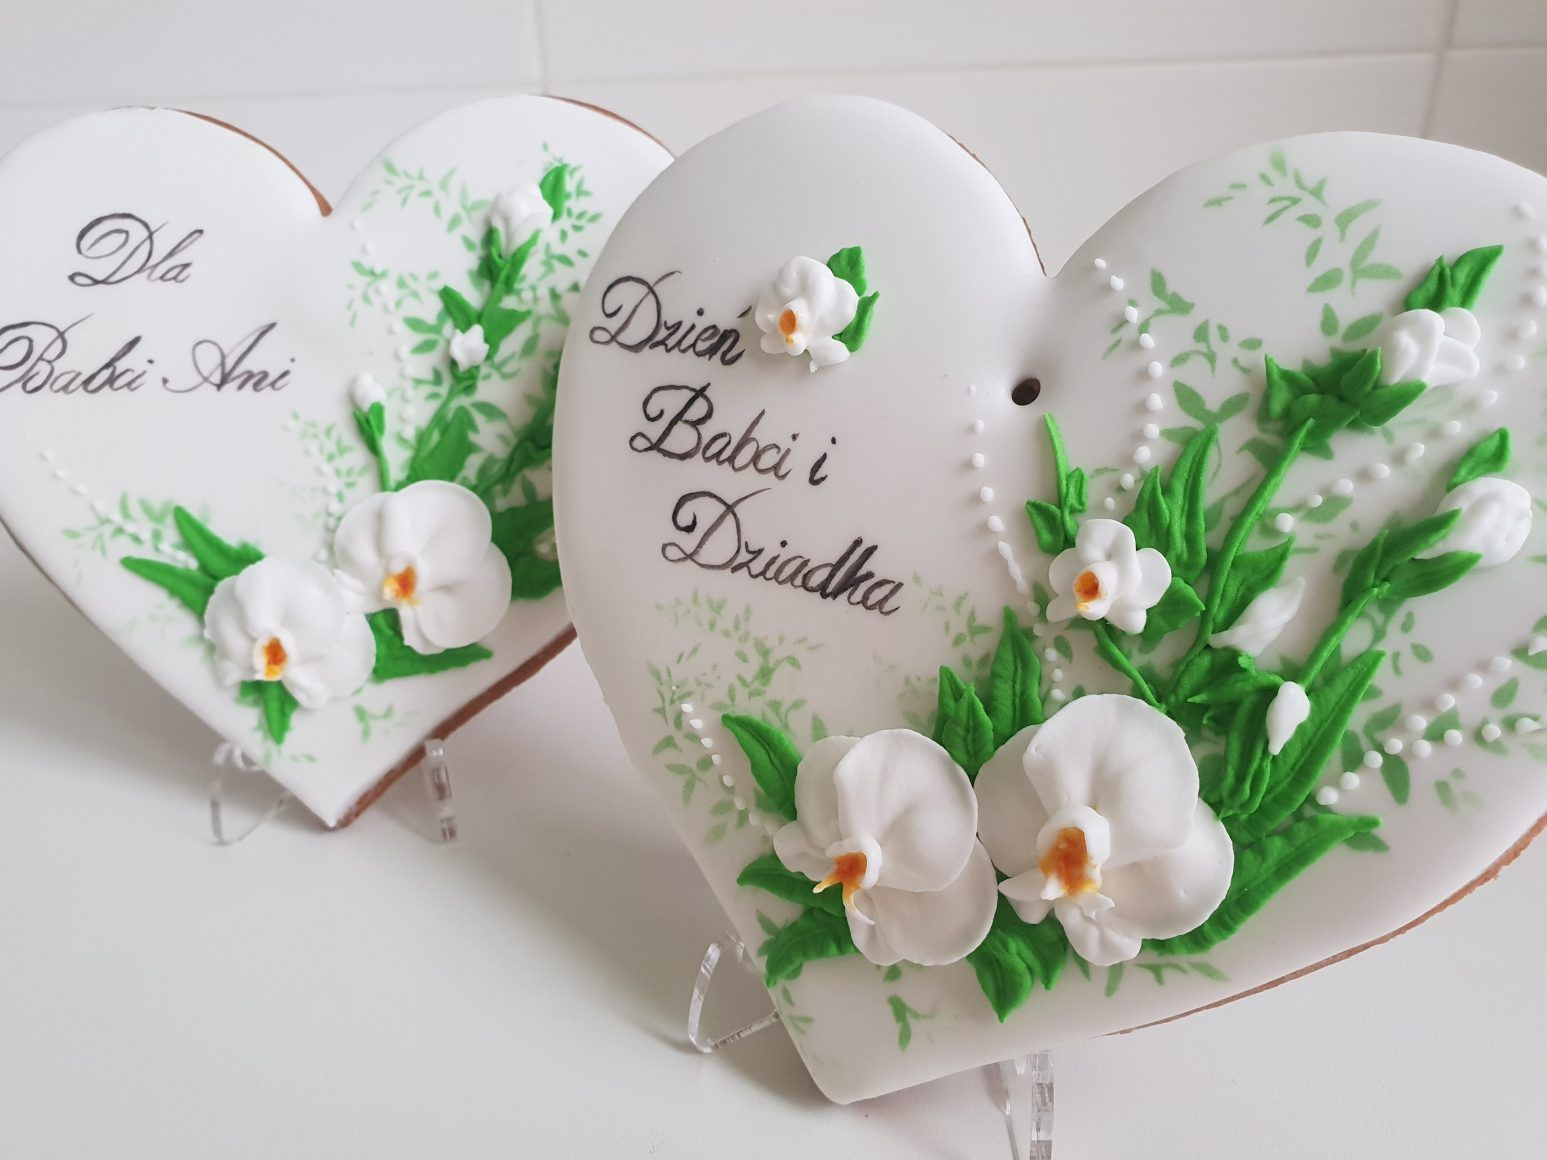 Pin By Basia Sweets Lukrowaneciaste On Dekorowane Ciastka Beautiful Cookies Cake Decorating Place Card Holders